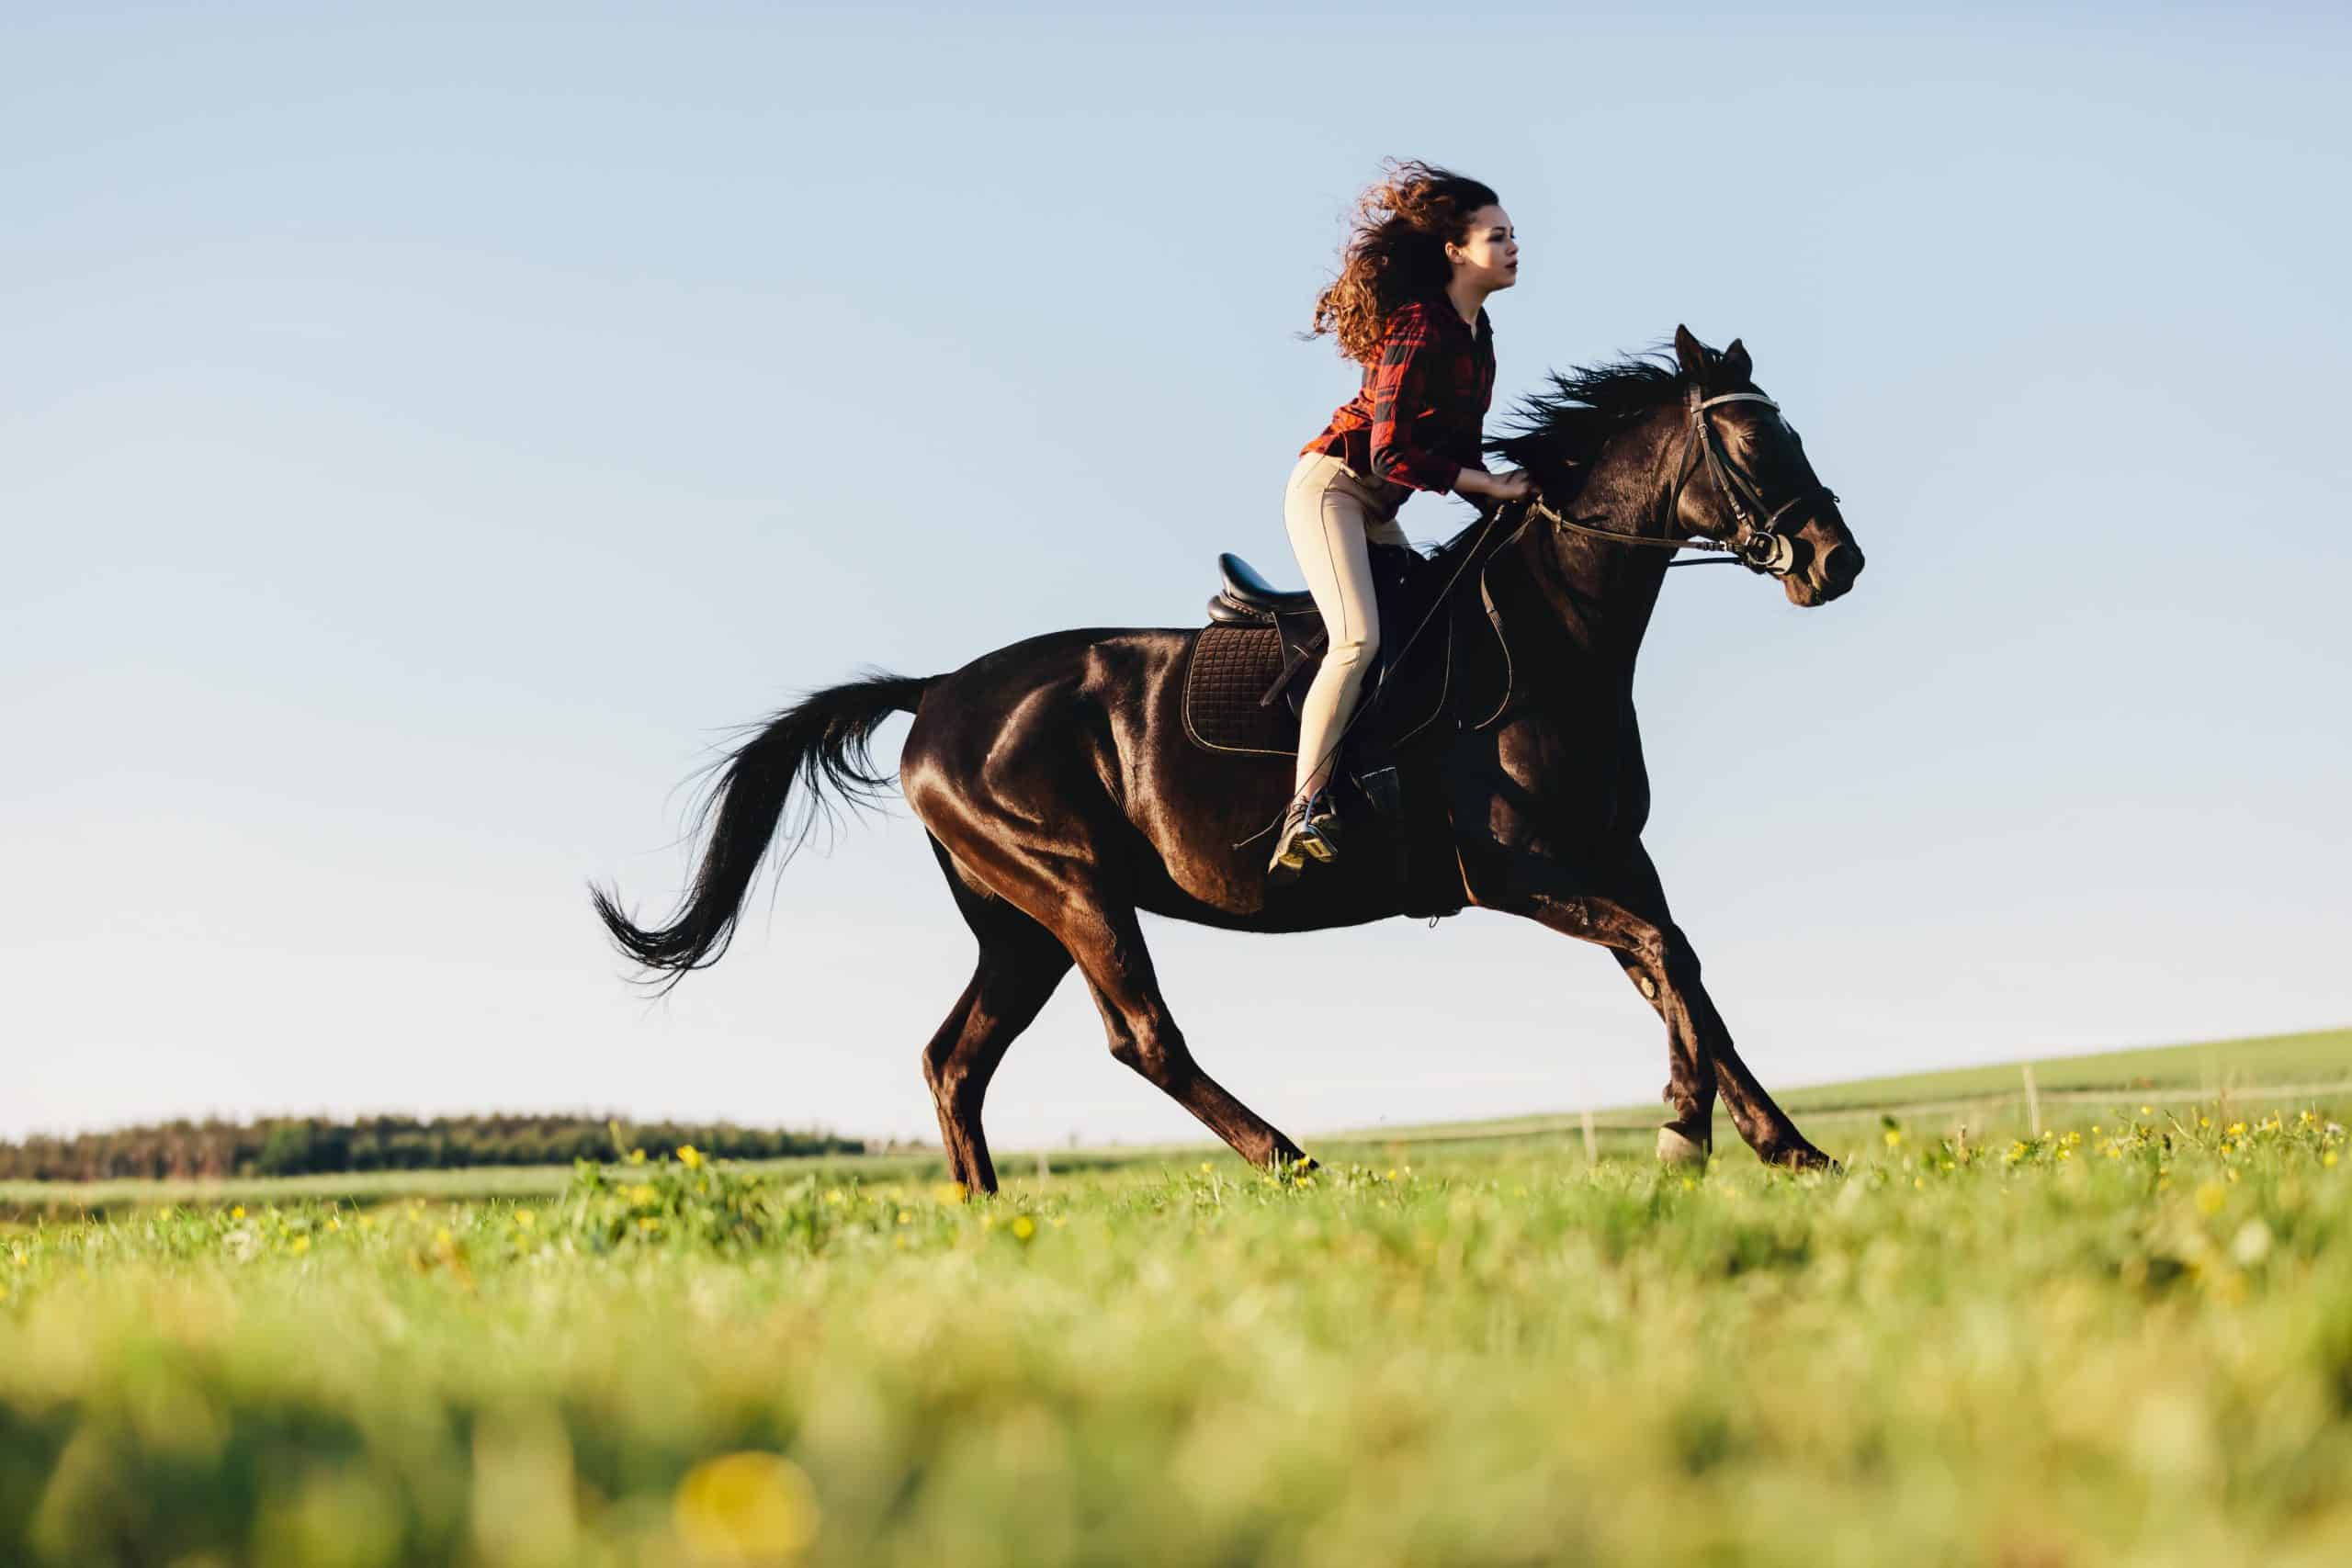 Young girl gallopading on a bay purebred horse. Summer outdoor activities. Animals.